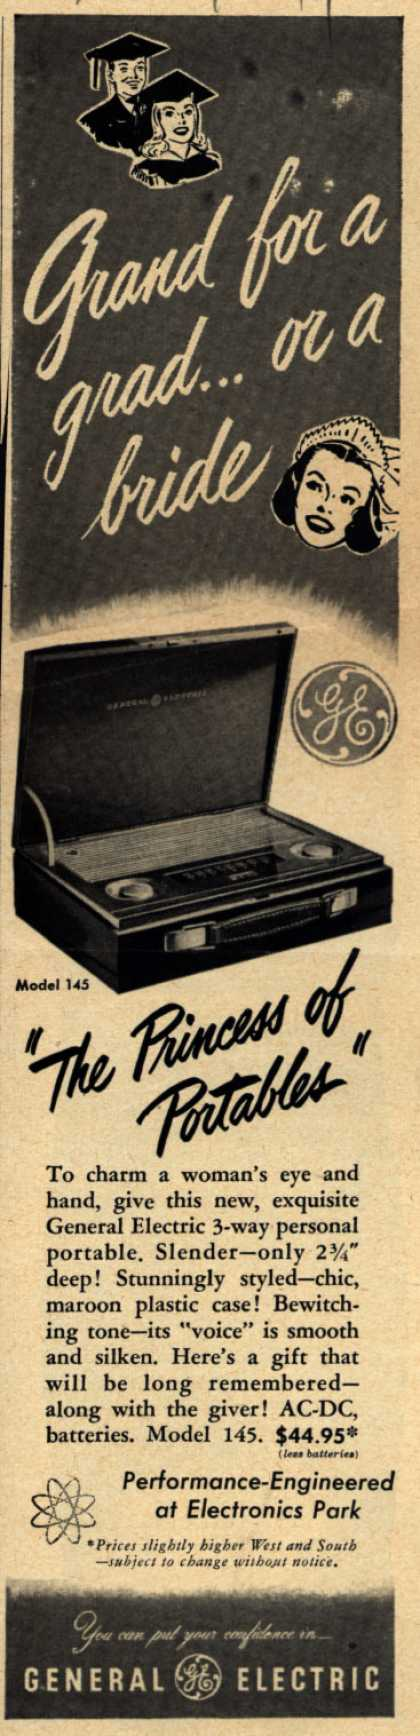 General Electric Company's Personal Portable radio. Model 145 – Grand For a Grad...or a Bride (1949)